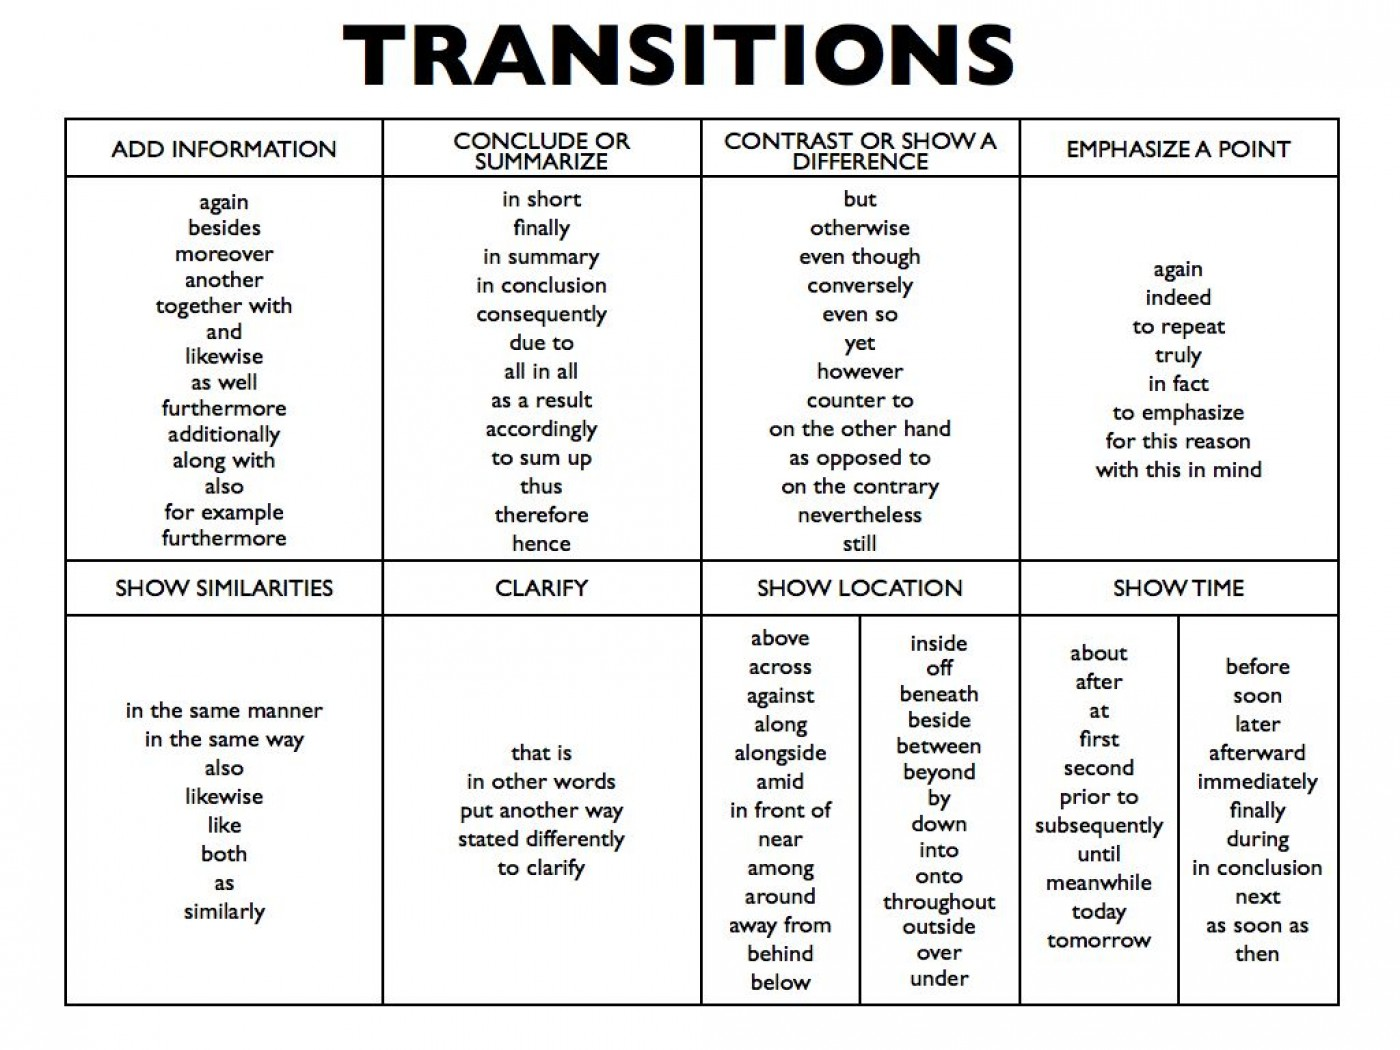 005 Essay Example Transitions 4995883 1 Orig Archaicawful Persuasive Transition Phrases Conclusion Words List Between Paragraphs 1400